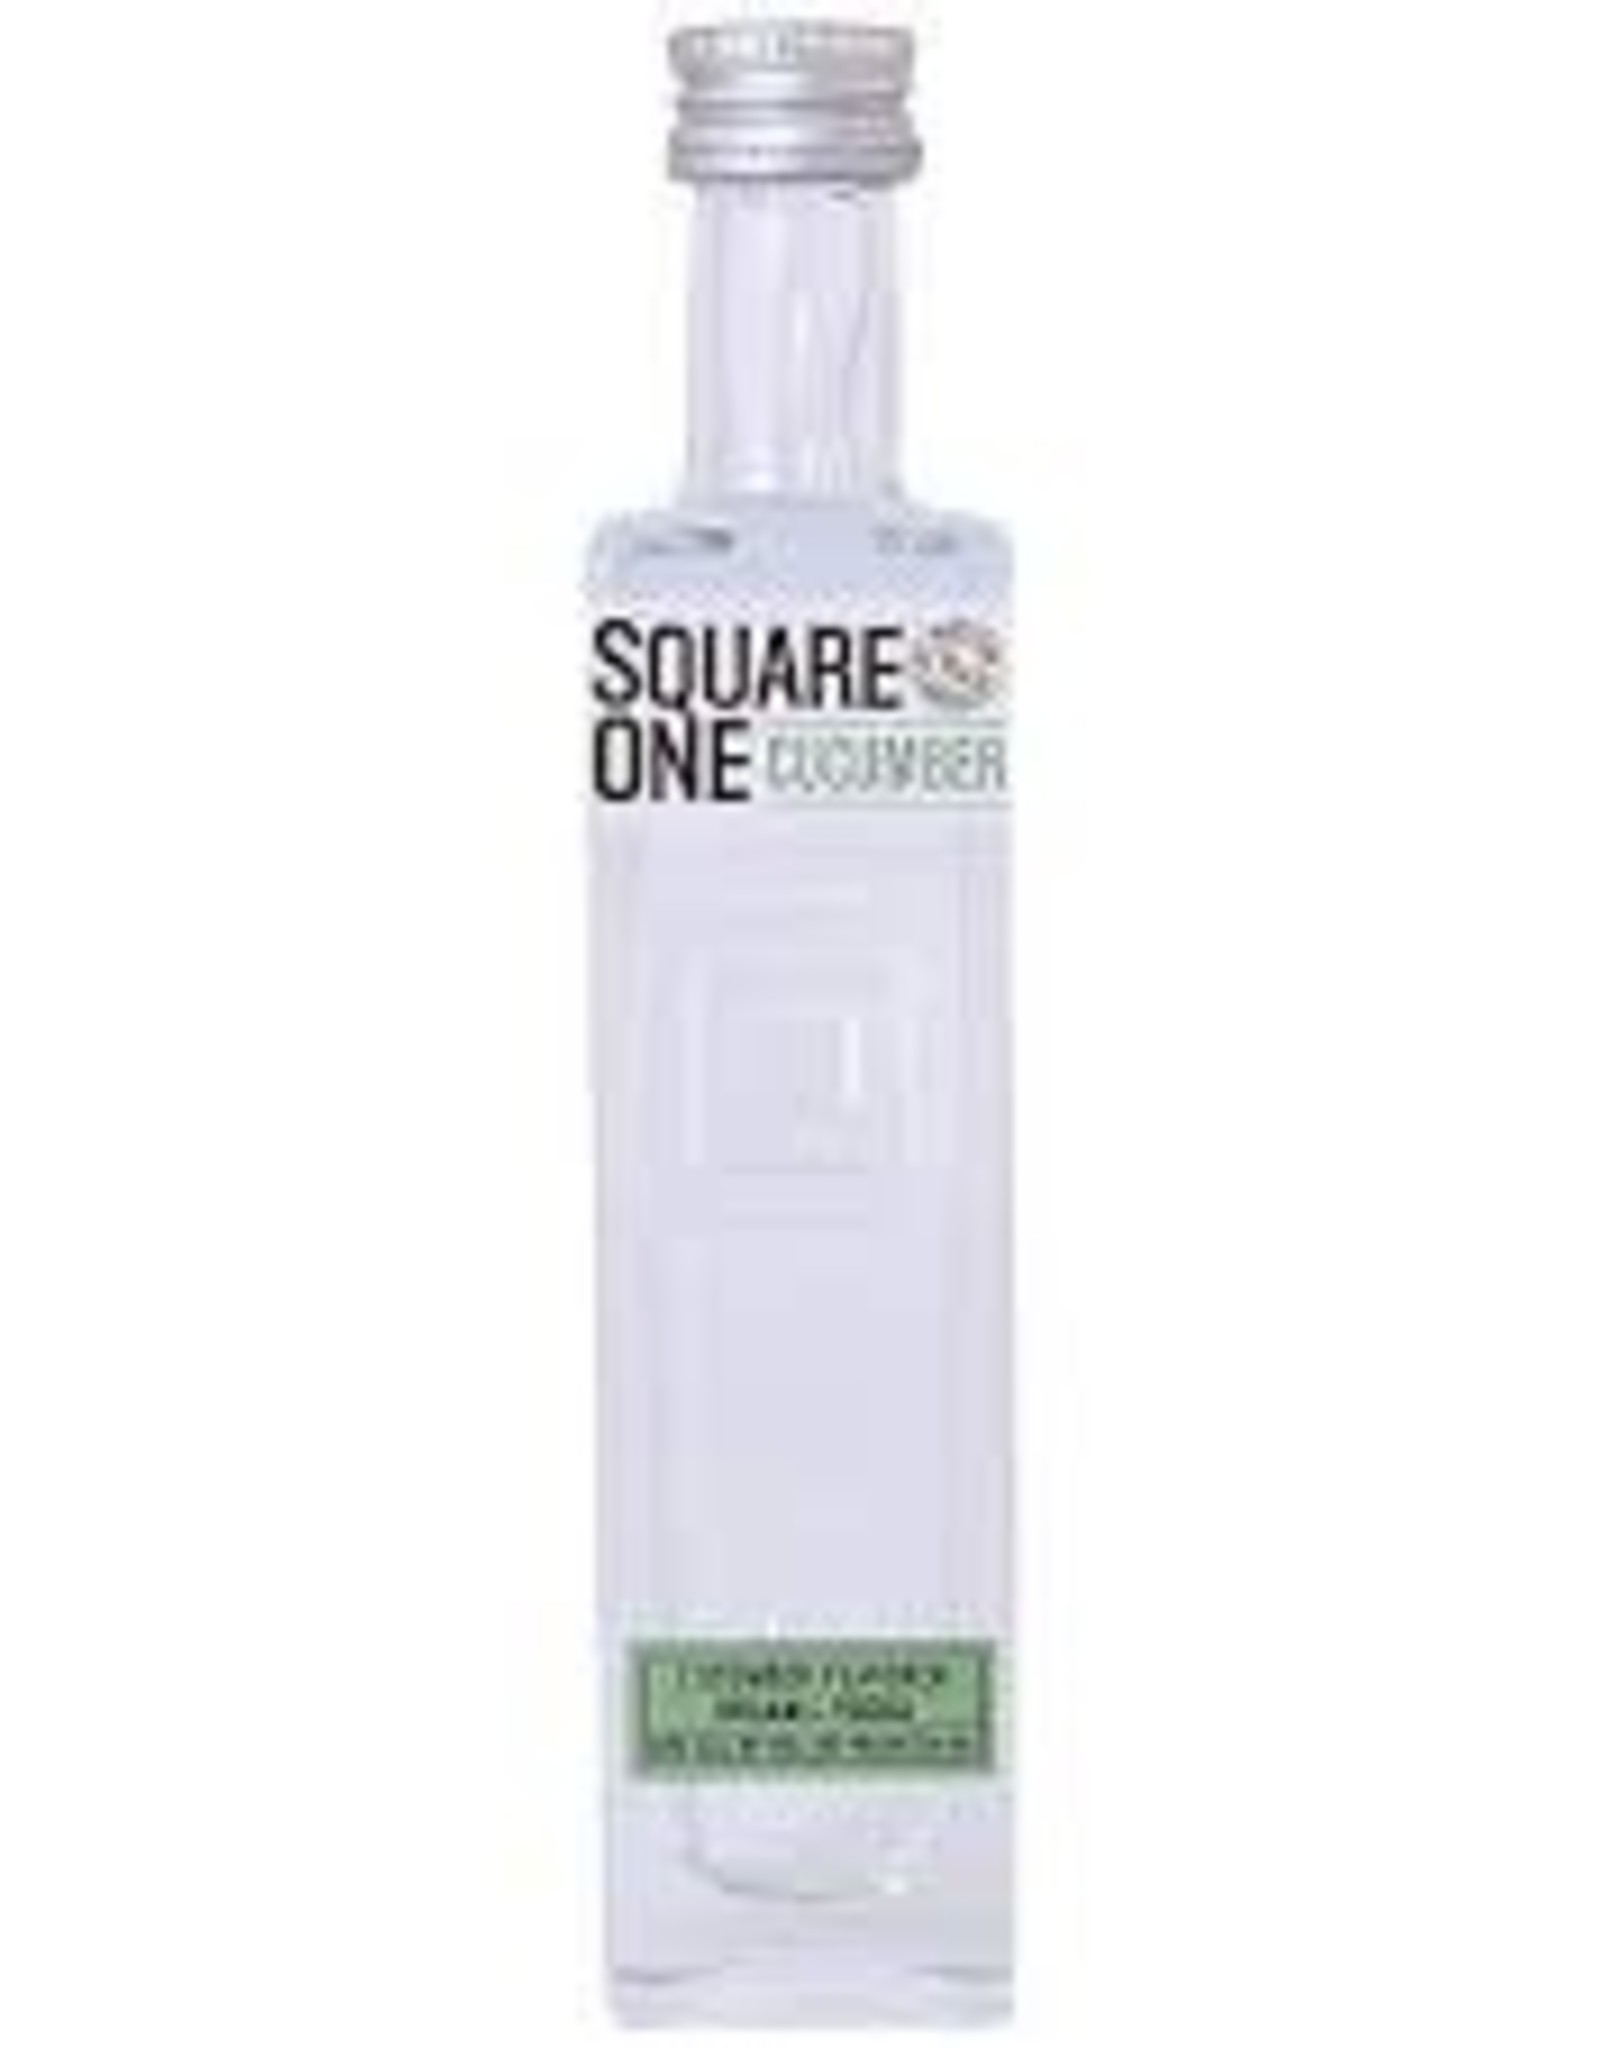 Spirits Vodka, Cucumber, Idaho, Square One